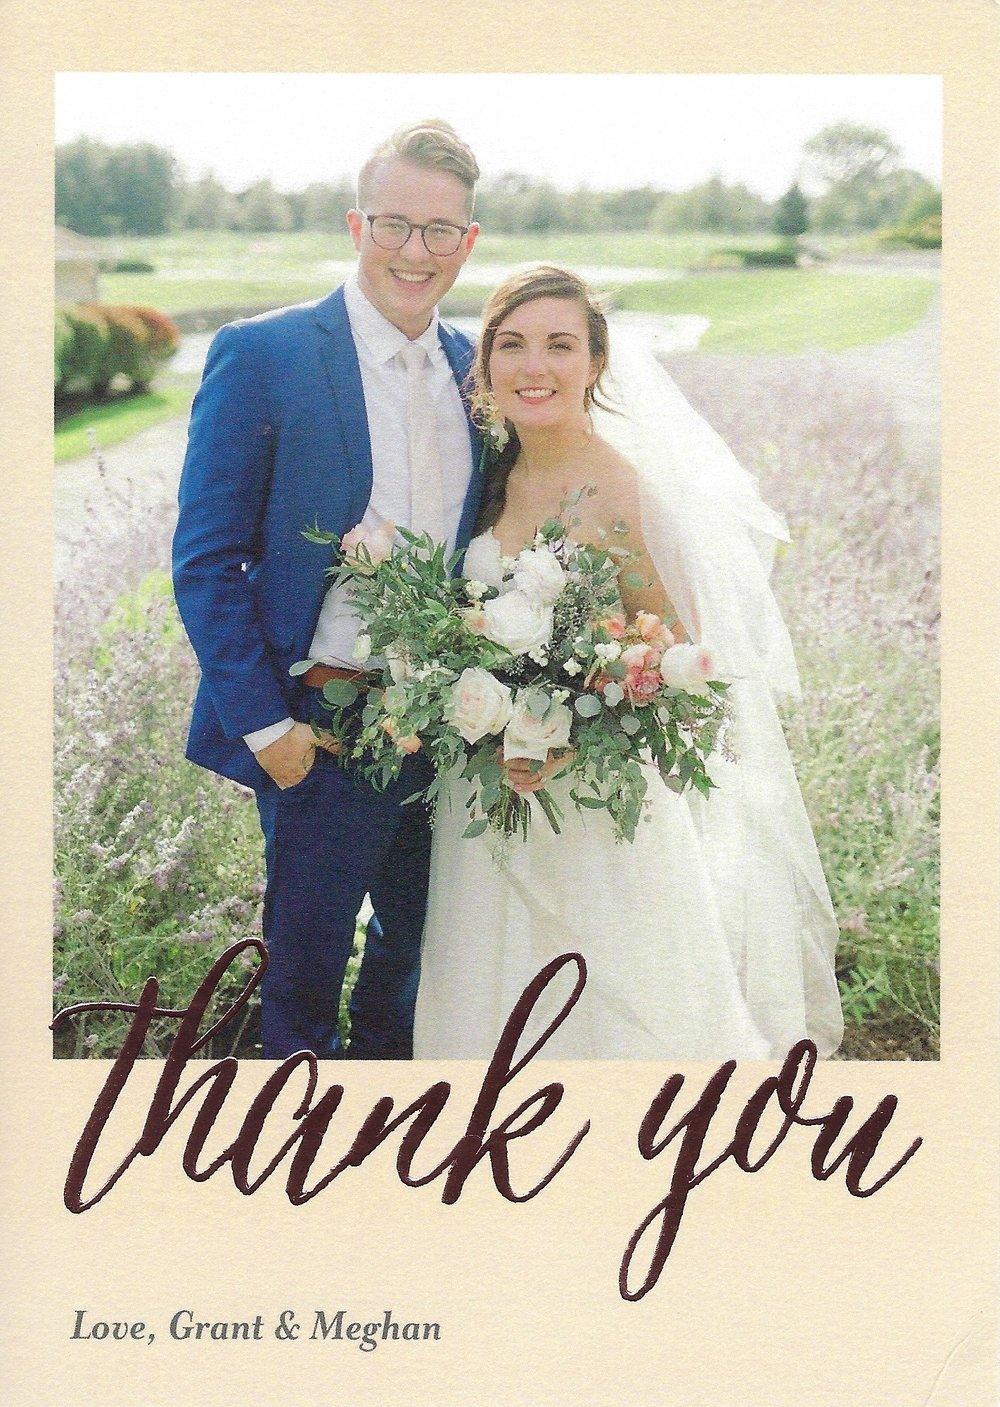 Thank You - Meghan & Grant.jpeg